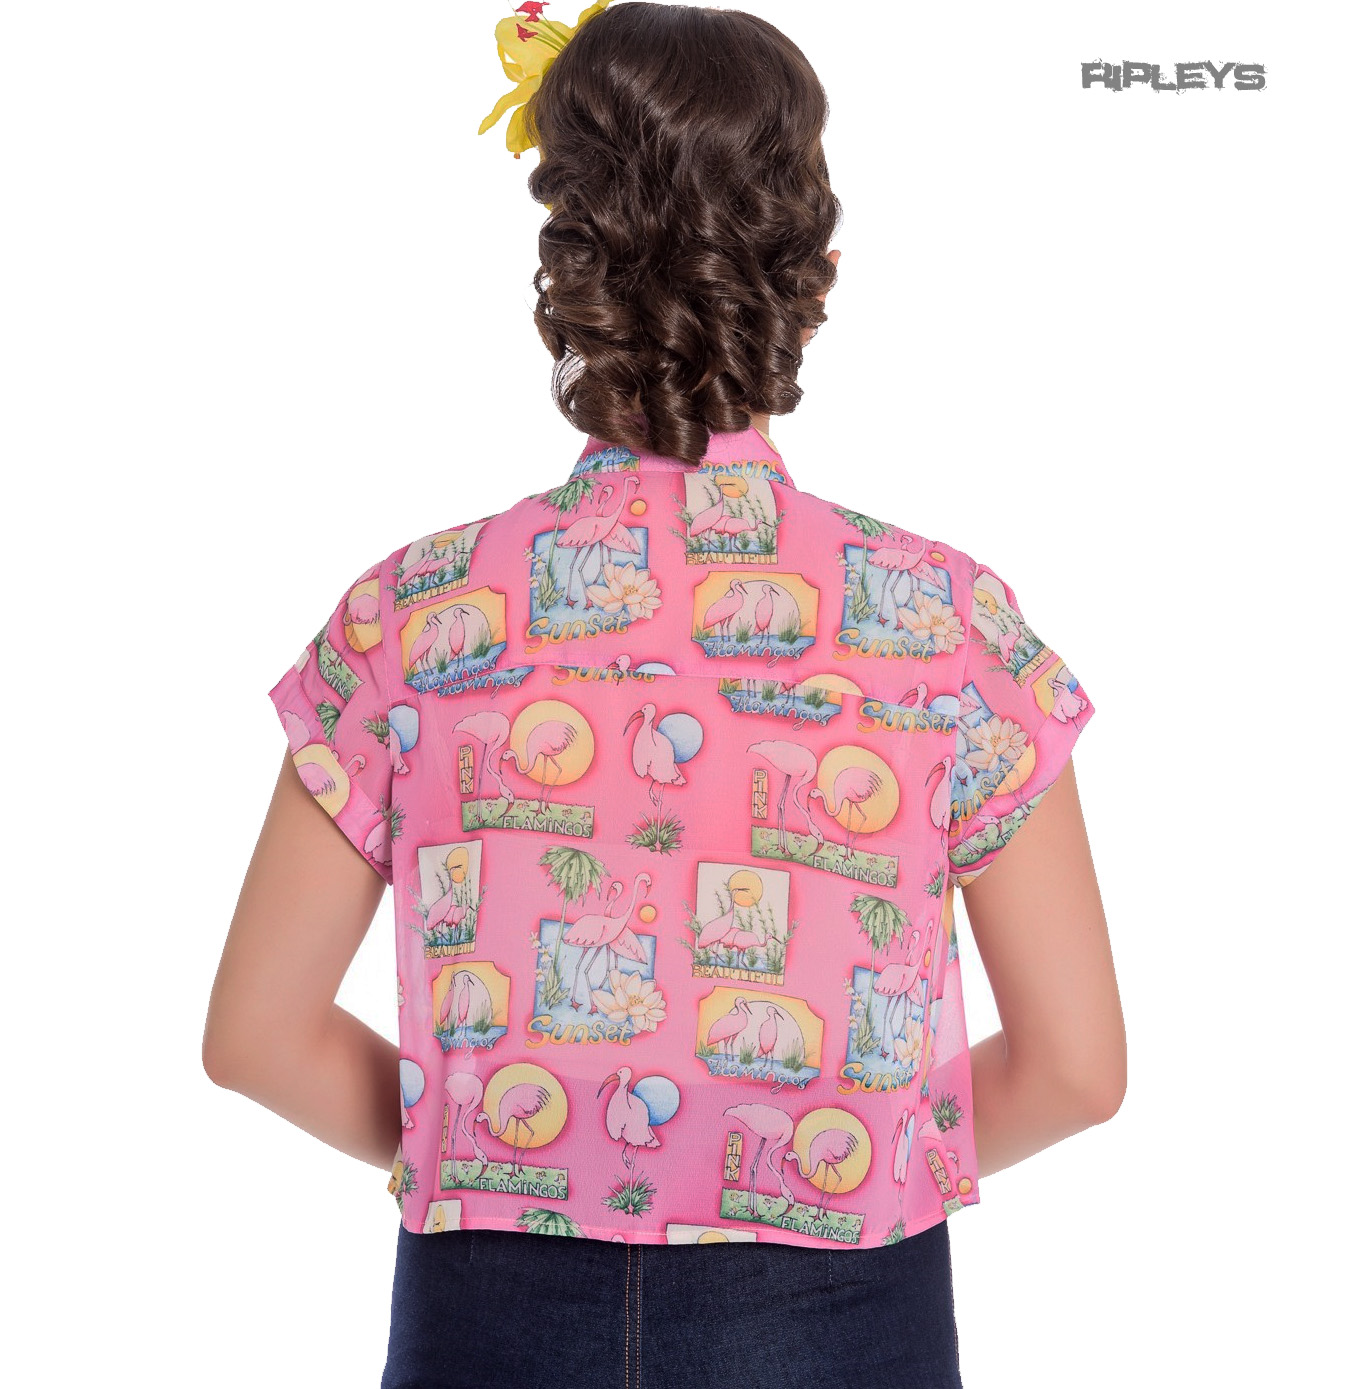 Hell-Bunny-50s-Retro-Top-Pink-Flamingo-MAXINE-Cropped-Blouse-Shirt-All-Sizes thumbnail 4